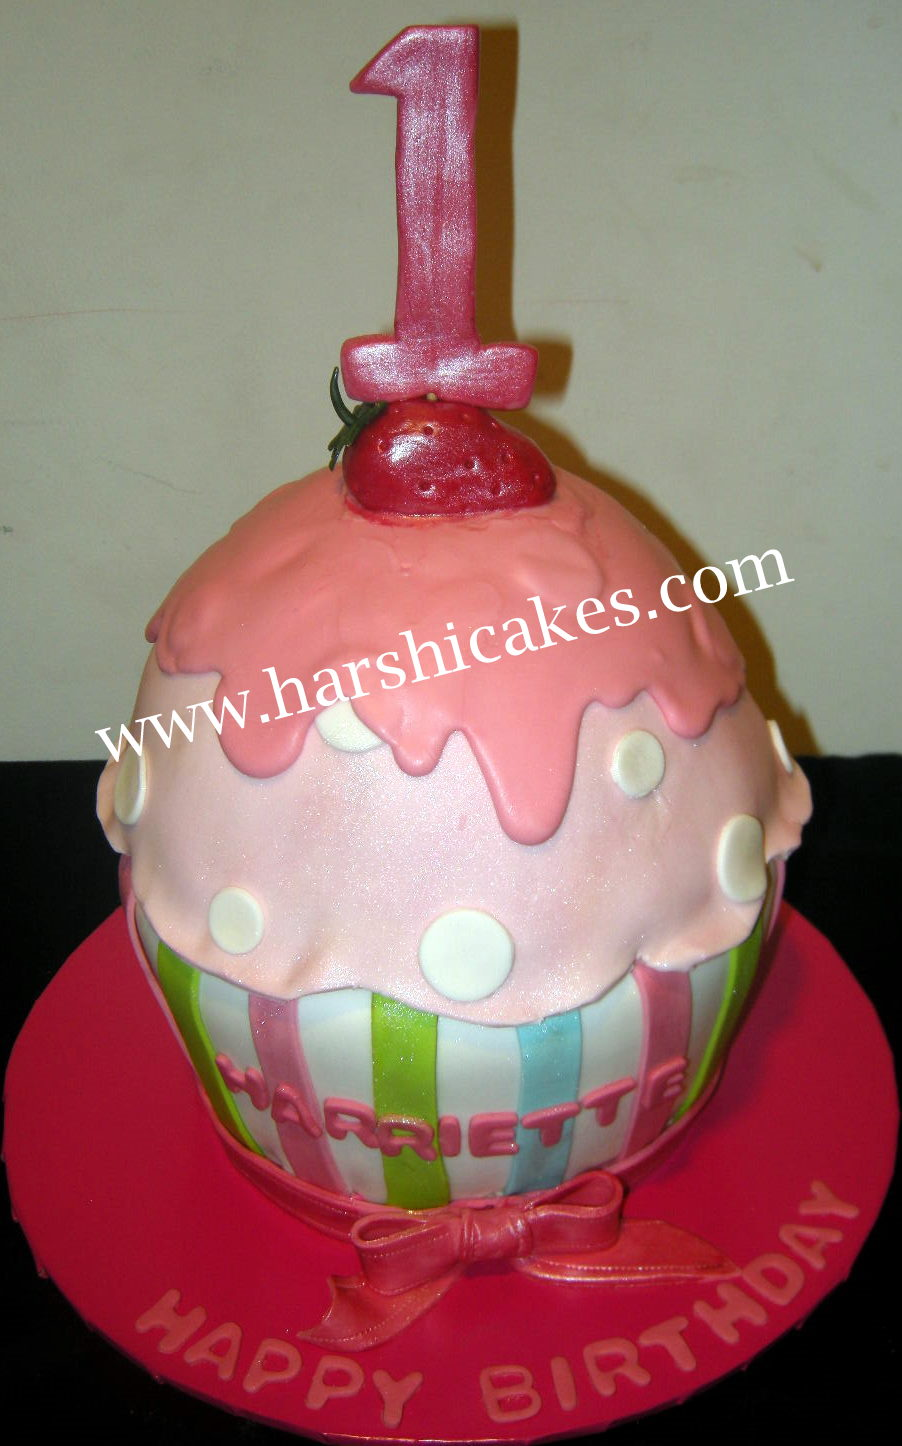 Harshis Cakes Bakes Giant Cupcake Cake For A First Birthday